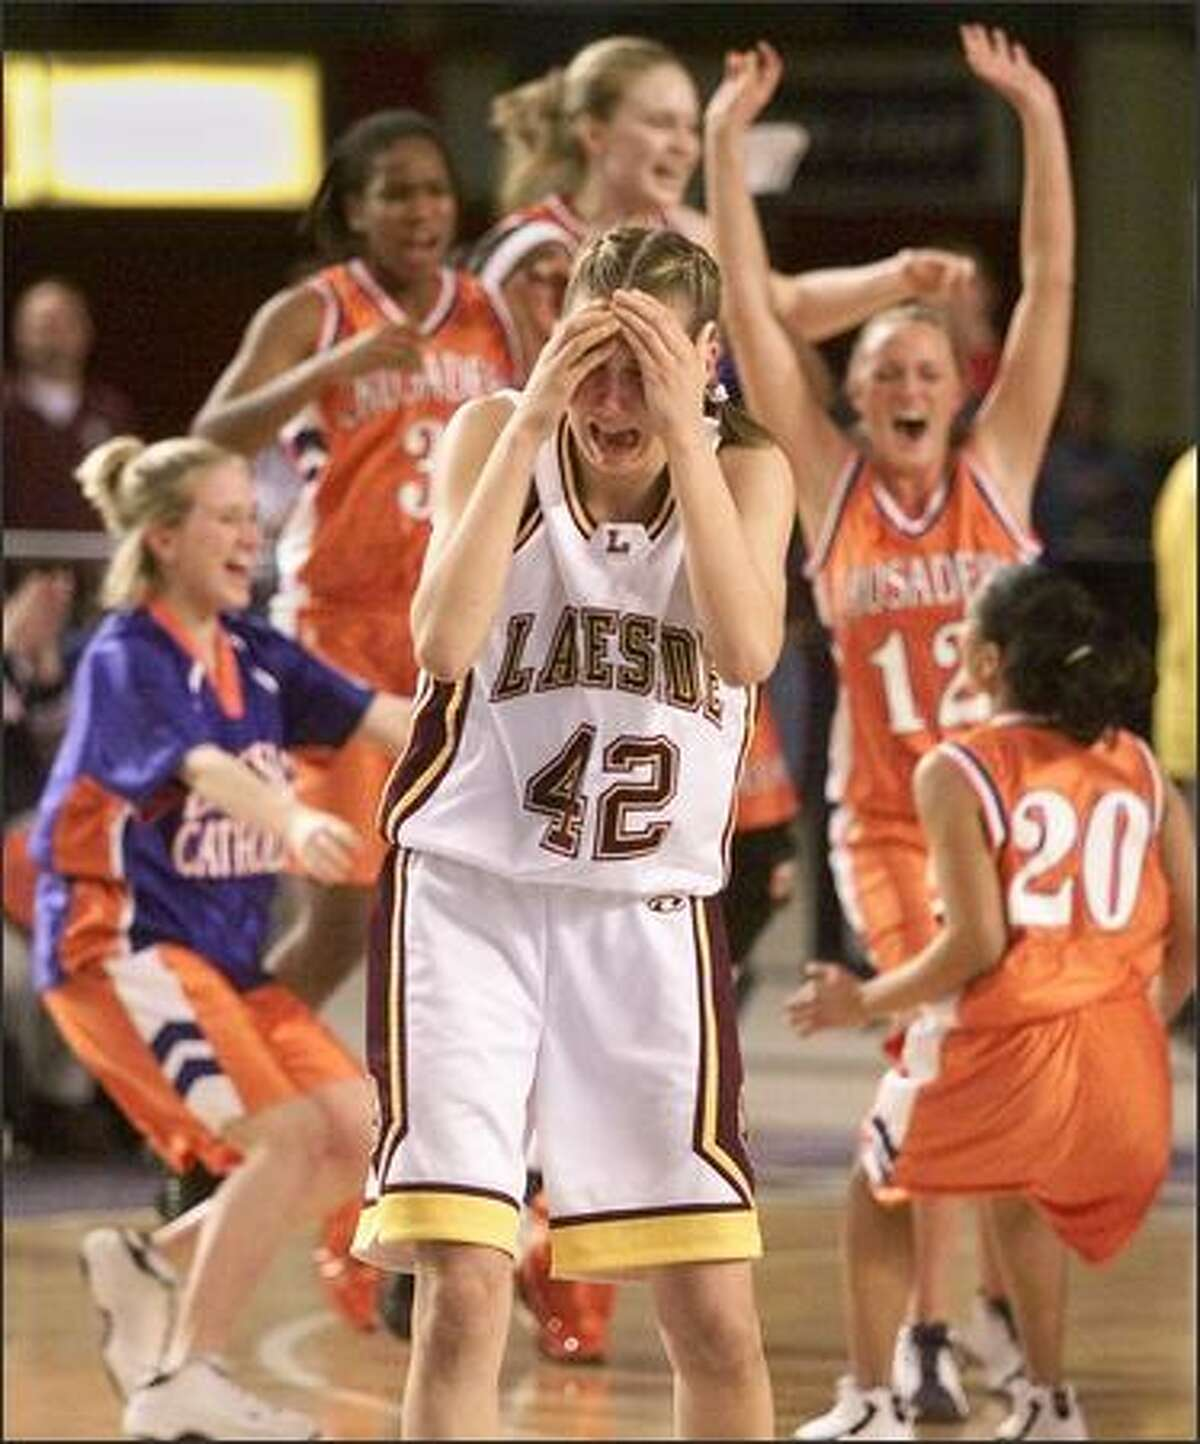 Lakeside's Eleanor Miller walks away in tears as Eastside Catholic celebrates their 49-43 victory in their semi-final game at the Tacoma Dome on March 1, 2002. (Photo by Mike Urban/Seattle Post-Intelligencer)